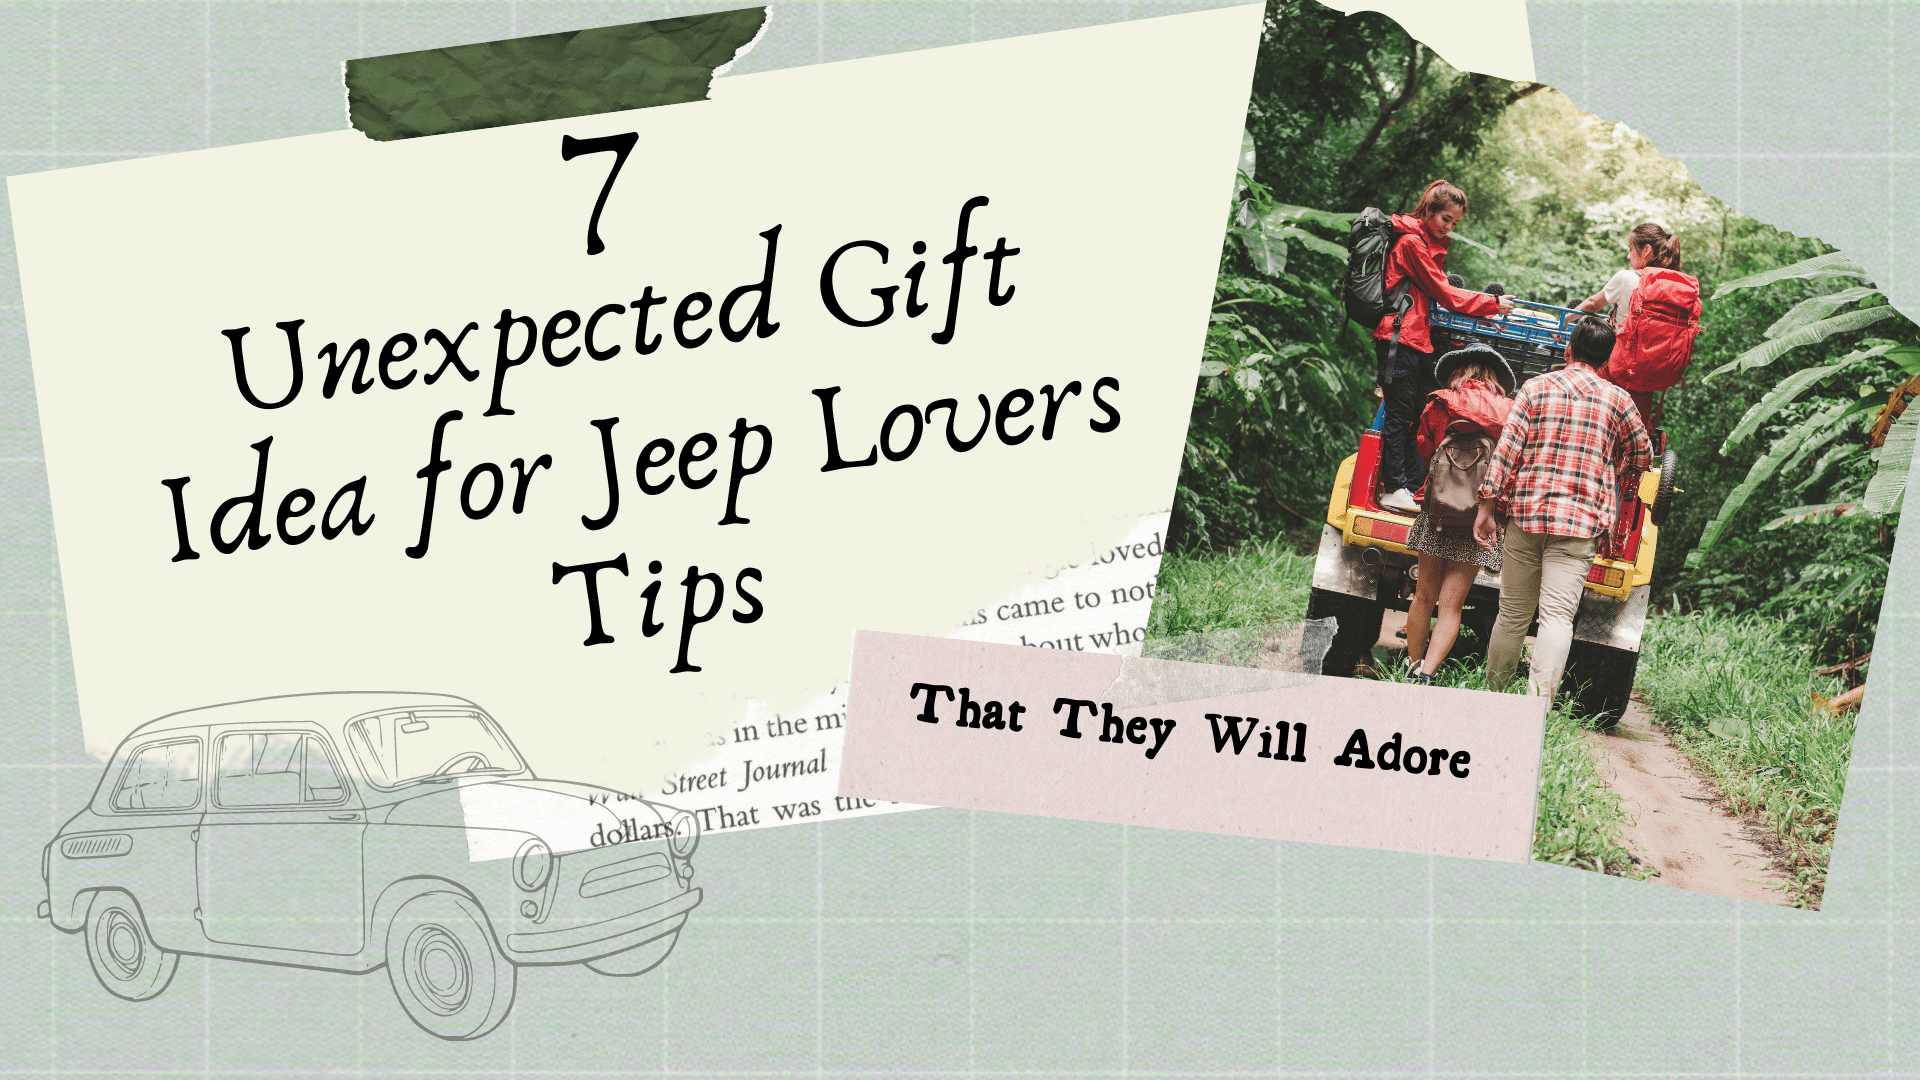 Stunning gift store blog 7 Unexpected Gift Idea for Jeep Lovers Tips That They Will Adore